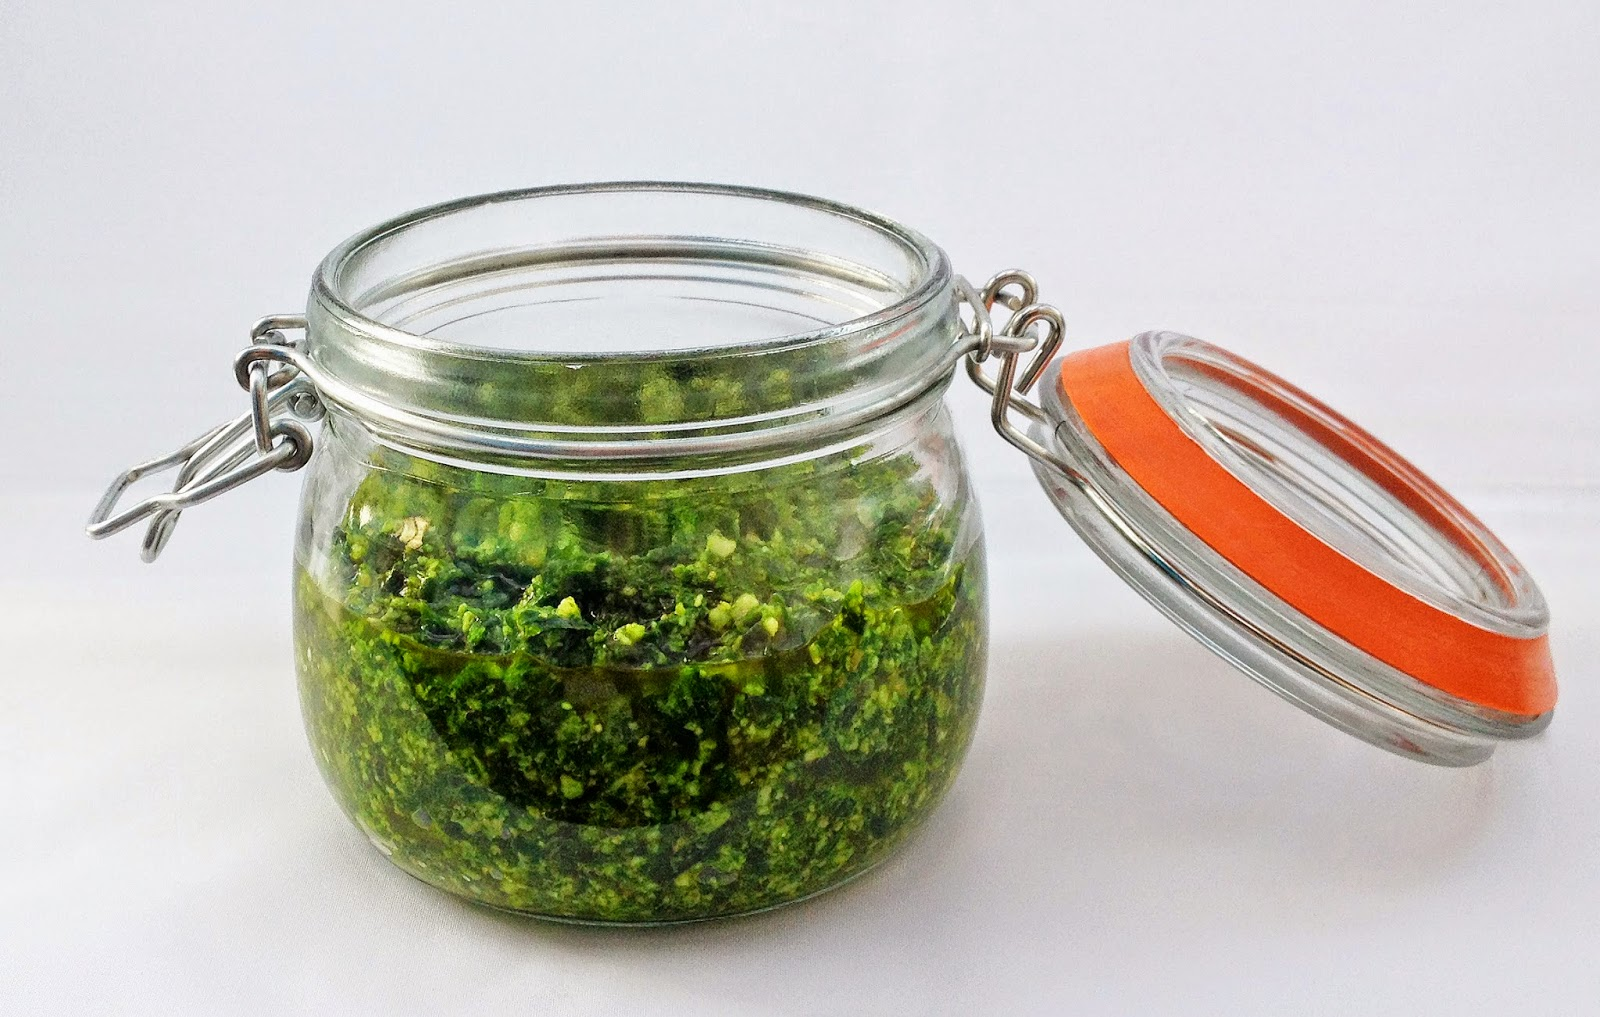 pesto made with wild garlic